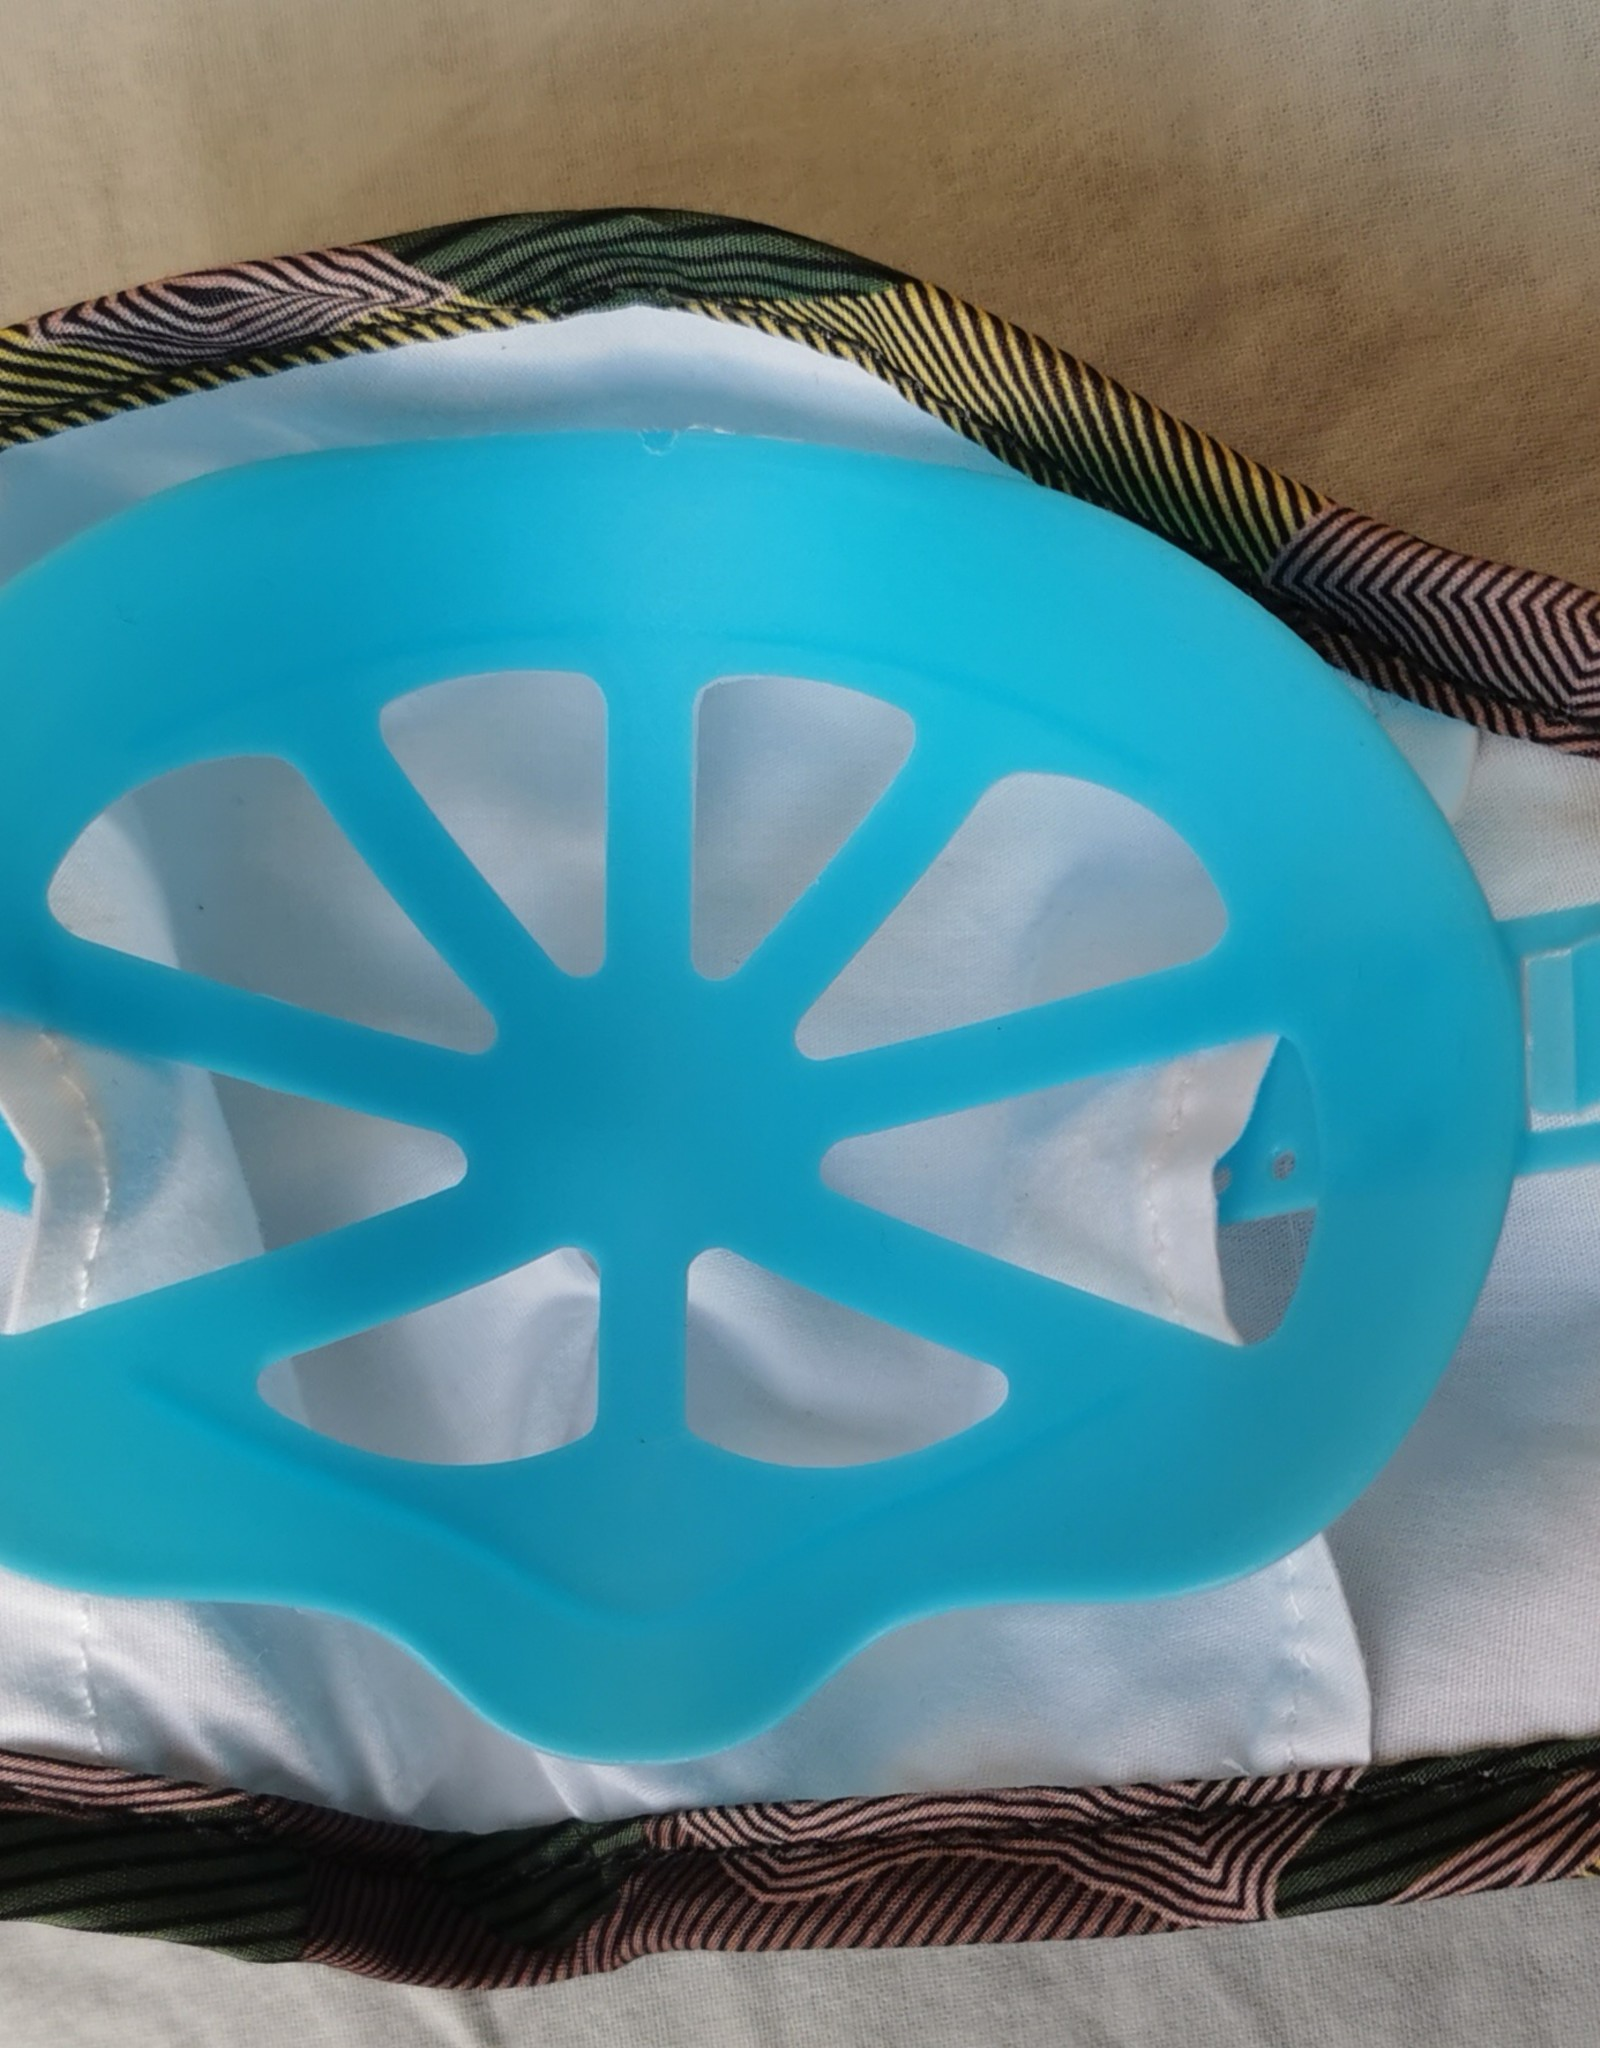 Facemask Comfort Set for easy breathing